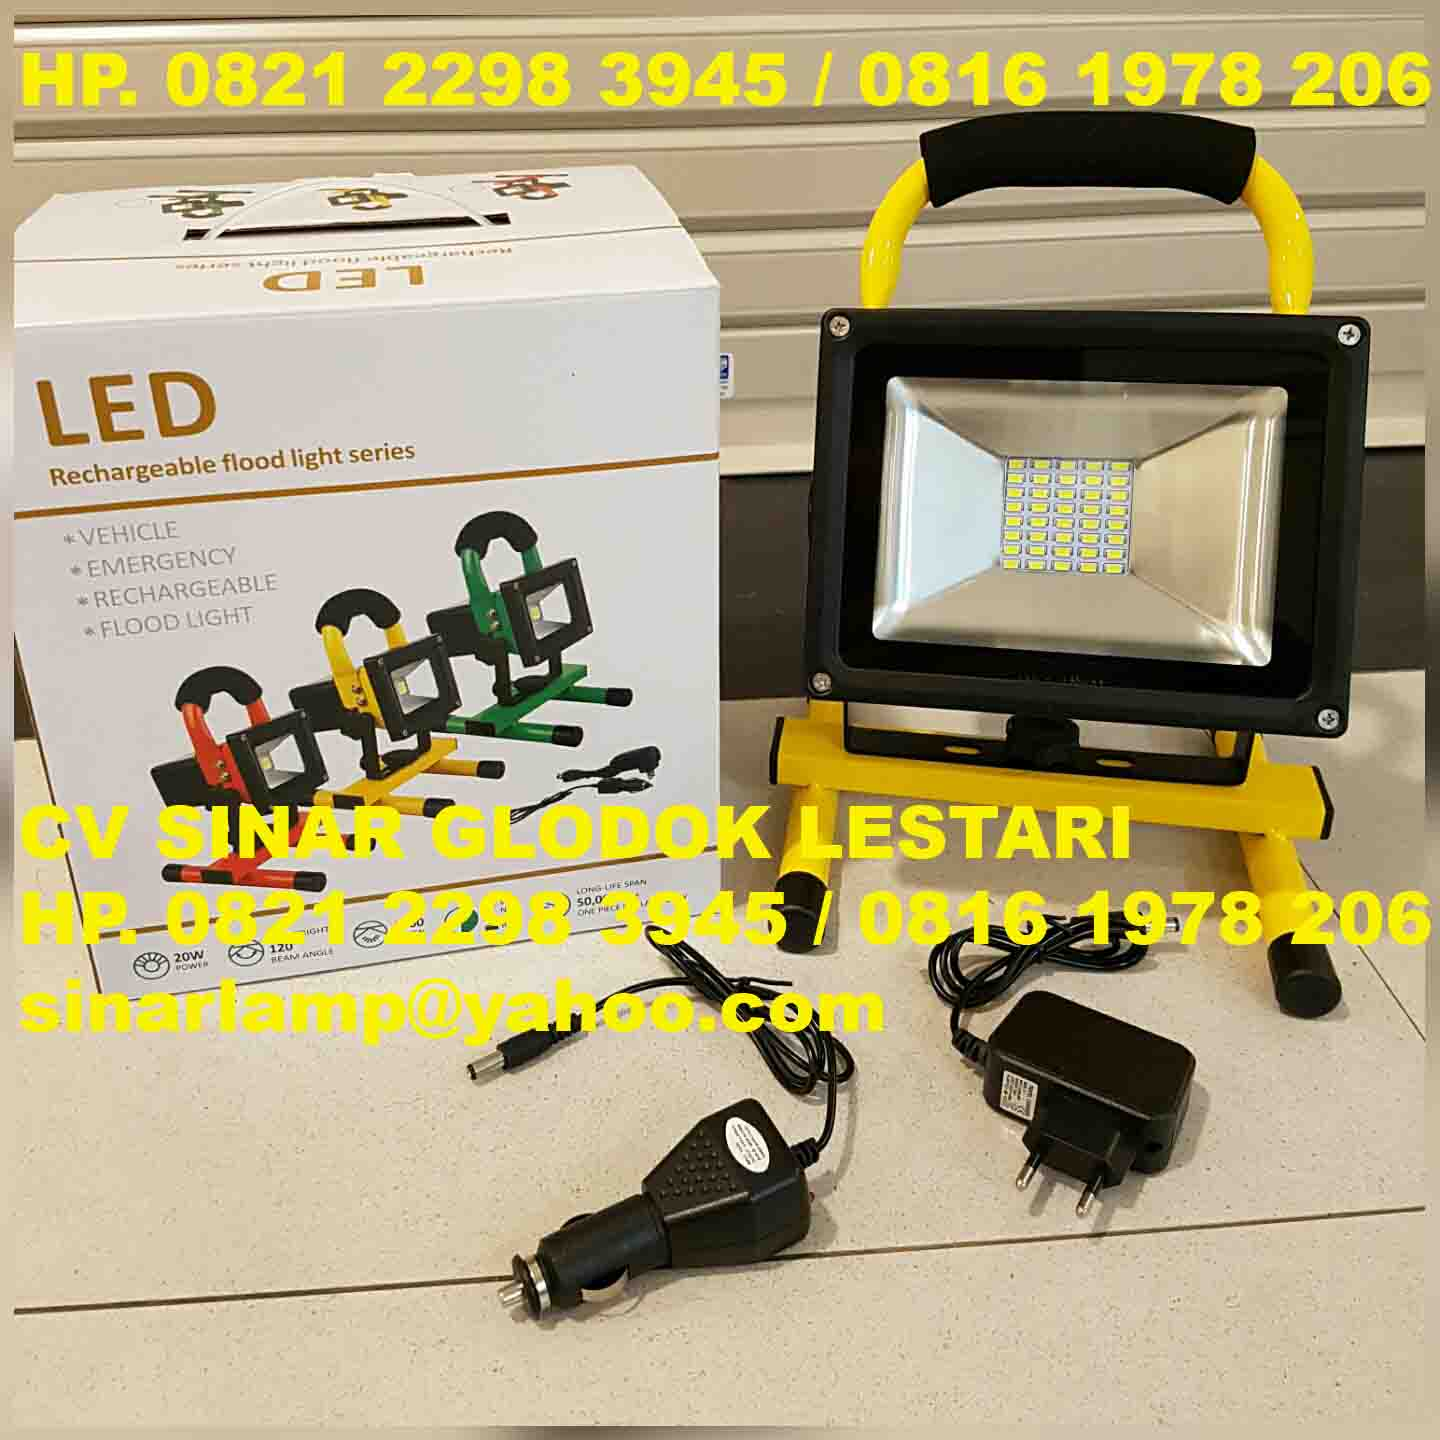 Lampu Sorot Led 404 The Requested Product Does Not Exist Results 50w Atau 50 W Watt Smd Floodlight Tembak Rechargeable Flood Light 20